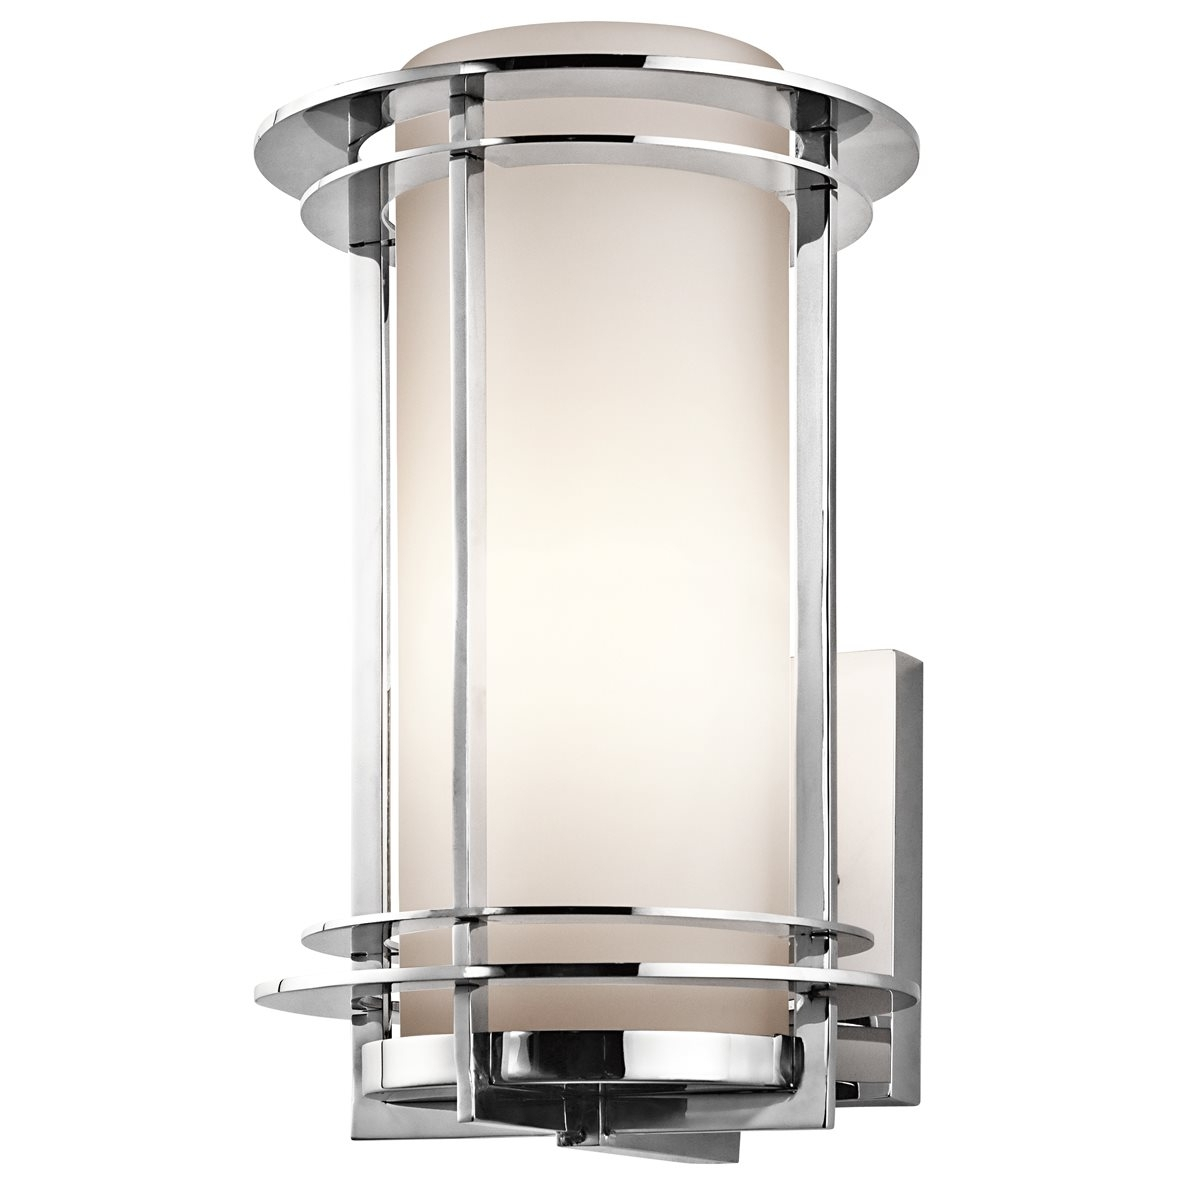 Kichler Lighting 49345Pss316 Pacific Edge Modern / Contemporary Throughout Well Liked Modern And Contemporary Outdoor Lighting Sconces (View 3 of 20)